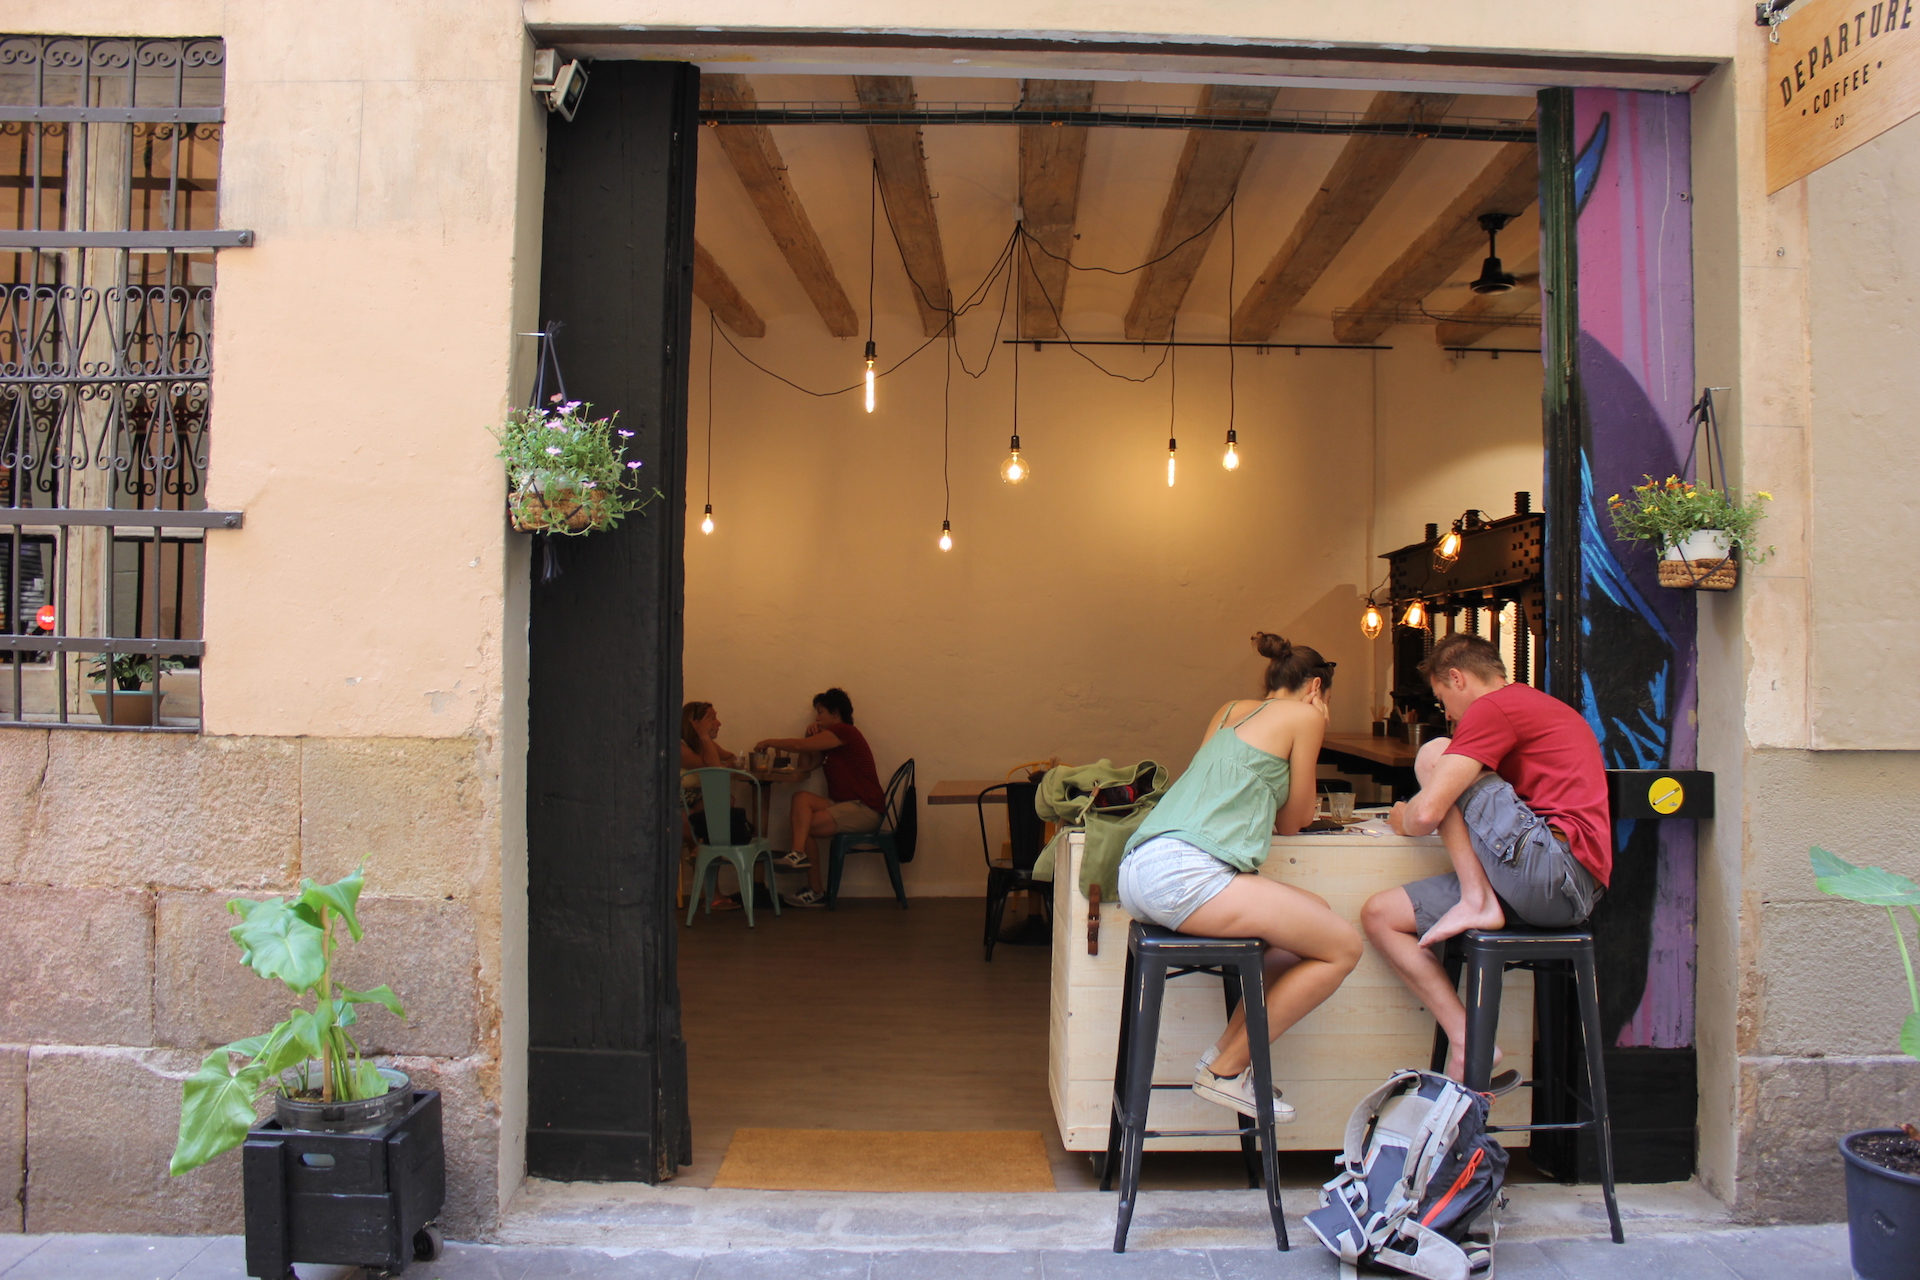 Escaping the heat in El Raval